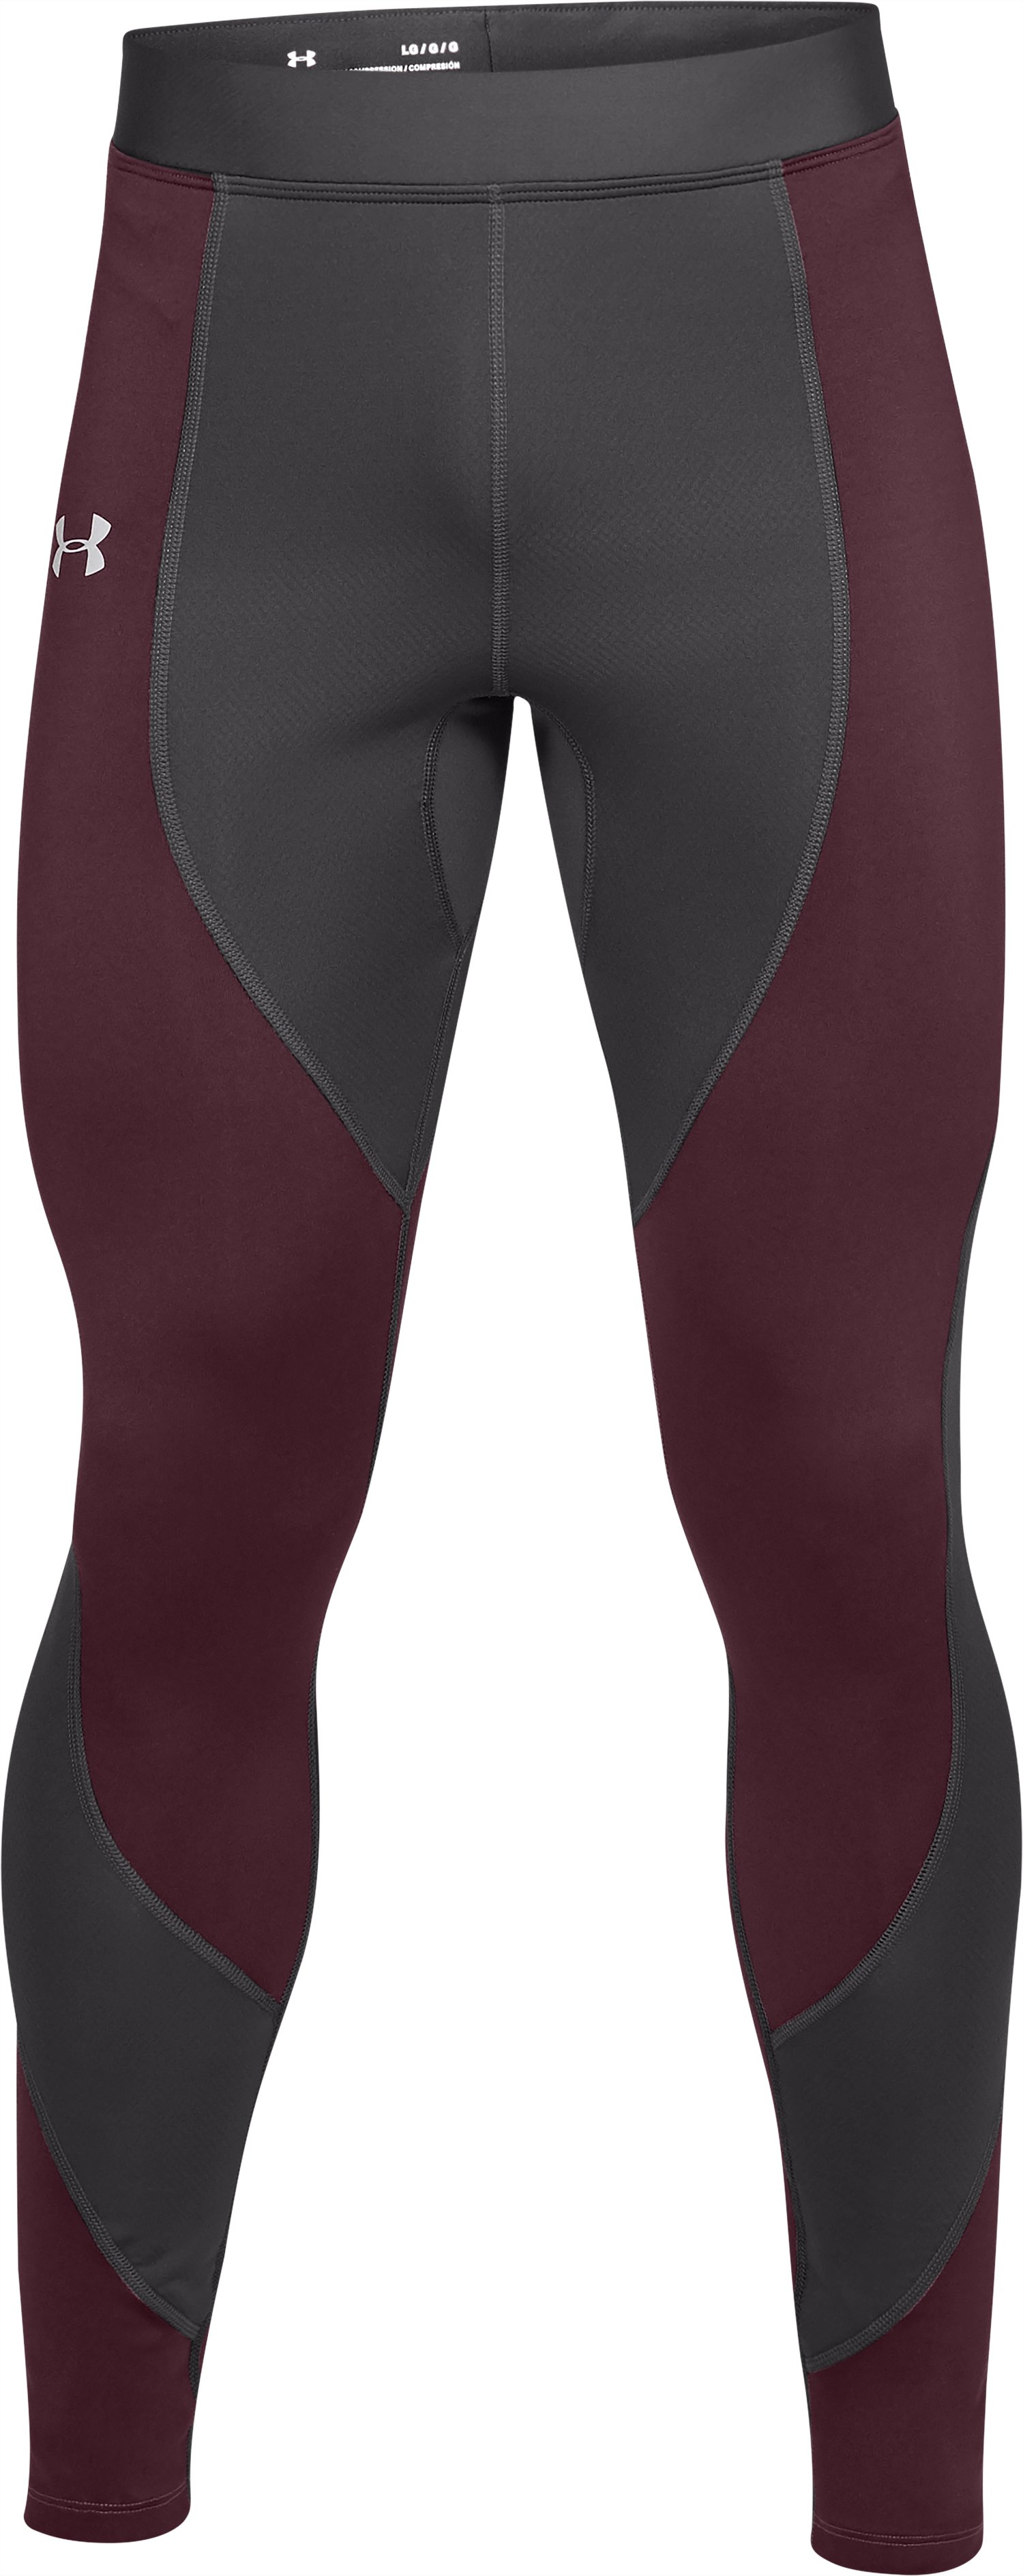 Men's ColdGear® Reactor Run Tights, Charcoal,